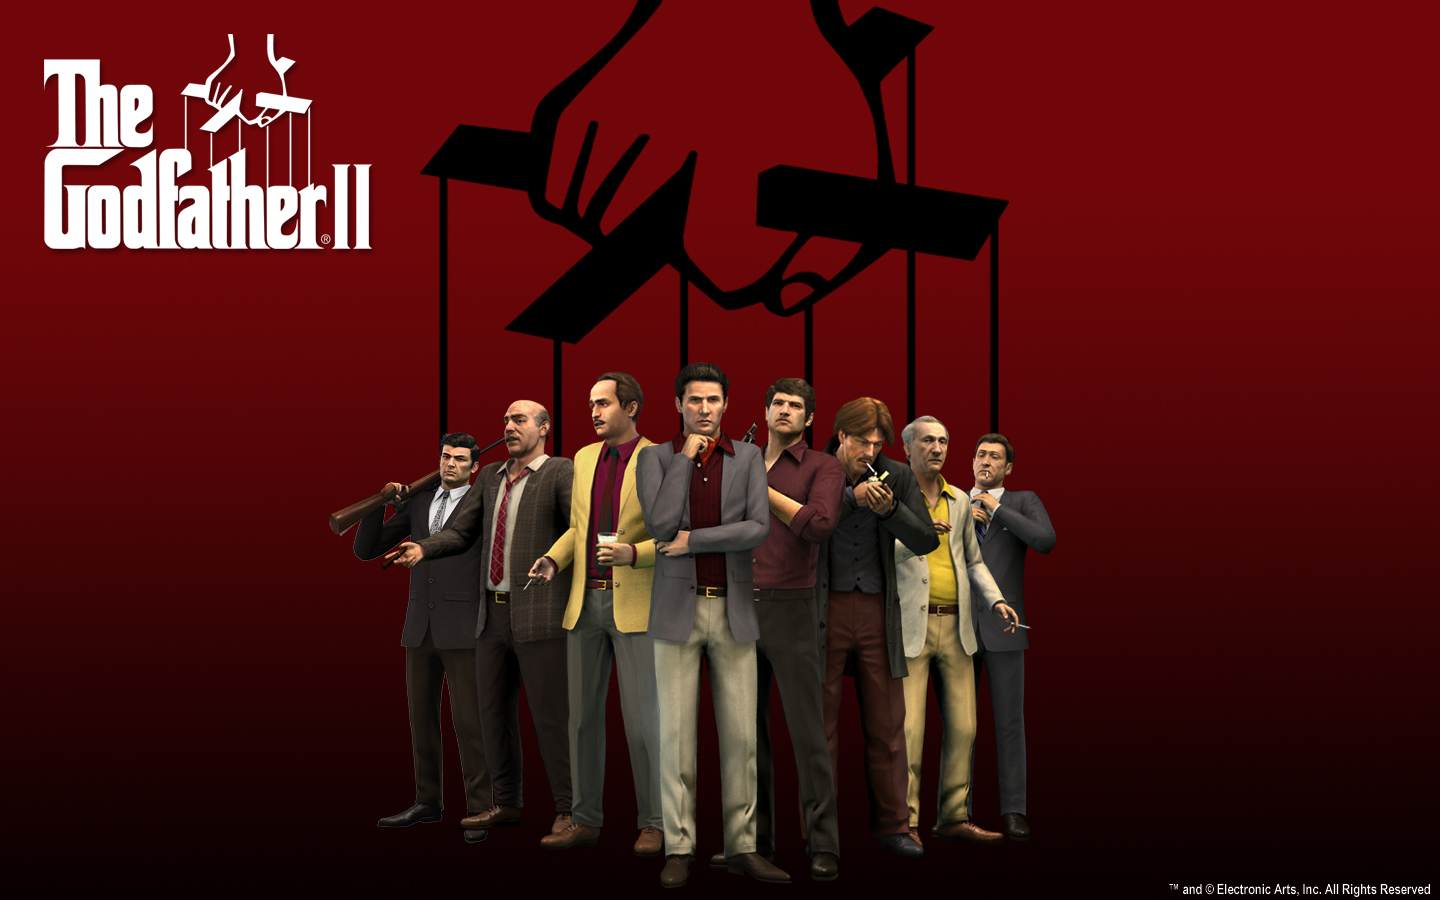 godfather 2 game wallpaper full hd wallpapers